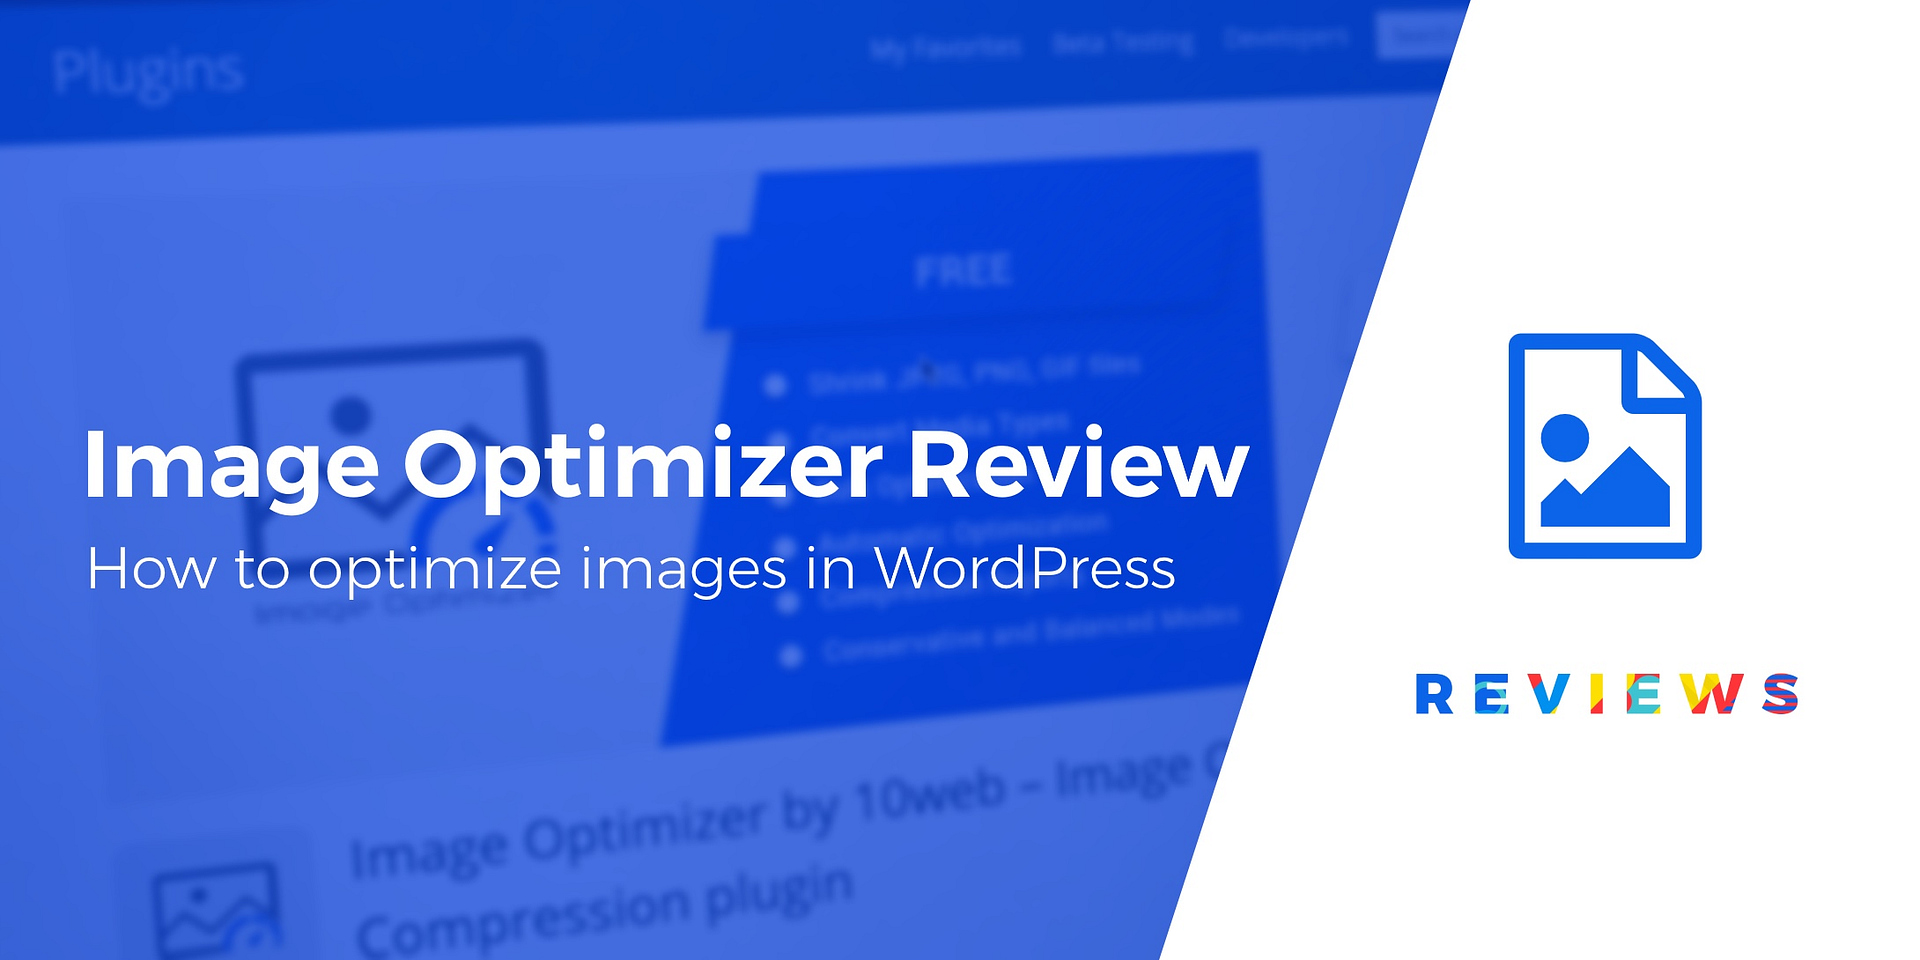 Image Optimizer Plugin Review How To Speed Up Your WordPress Site By Optimizing Images